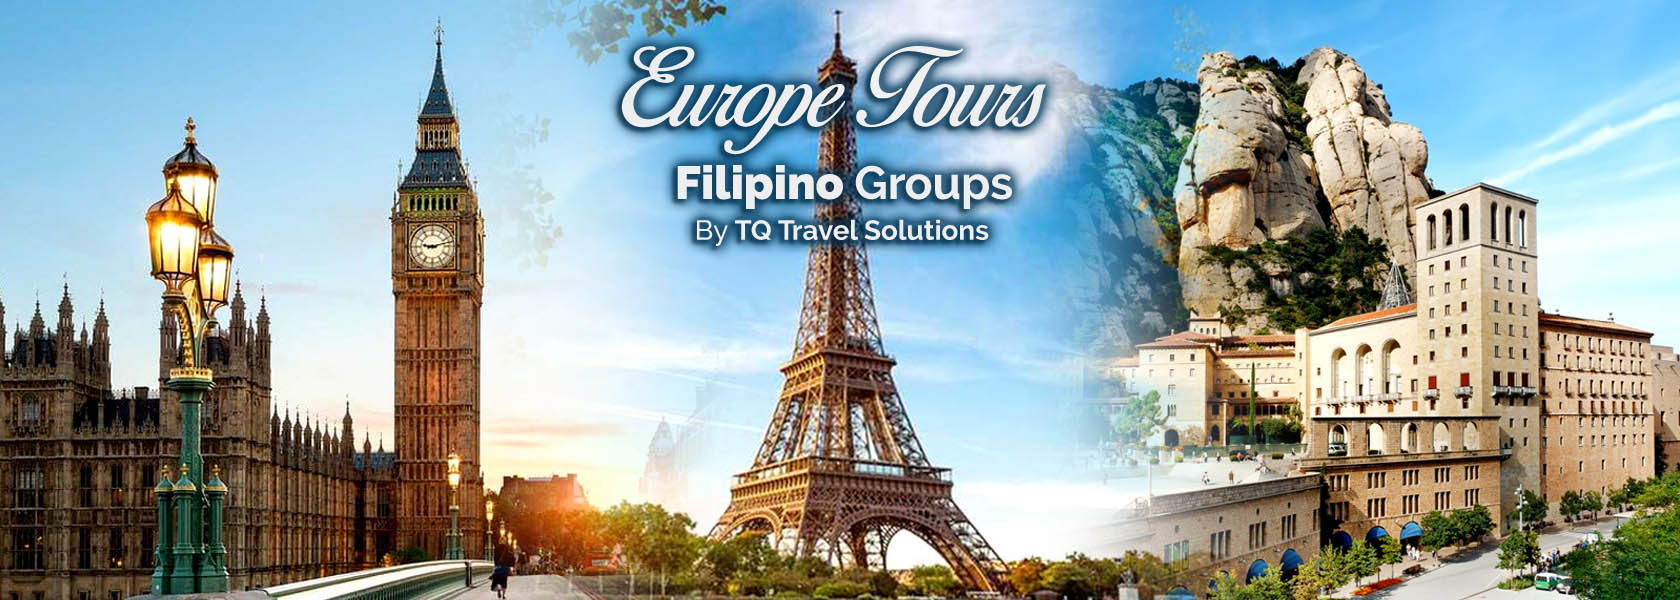 Customized Europe Tours From India